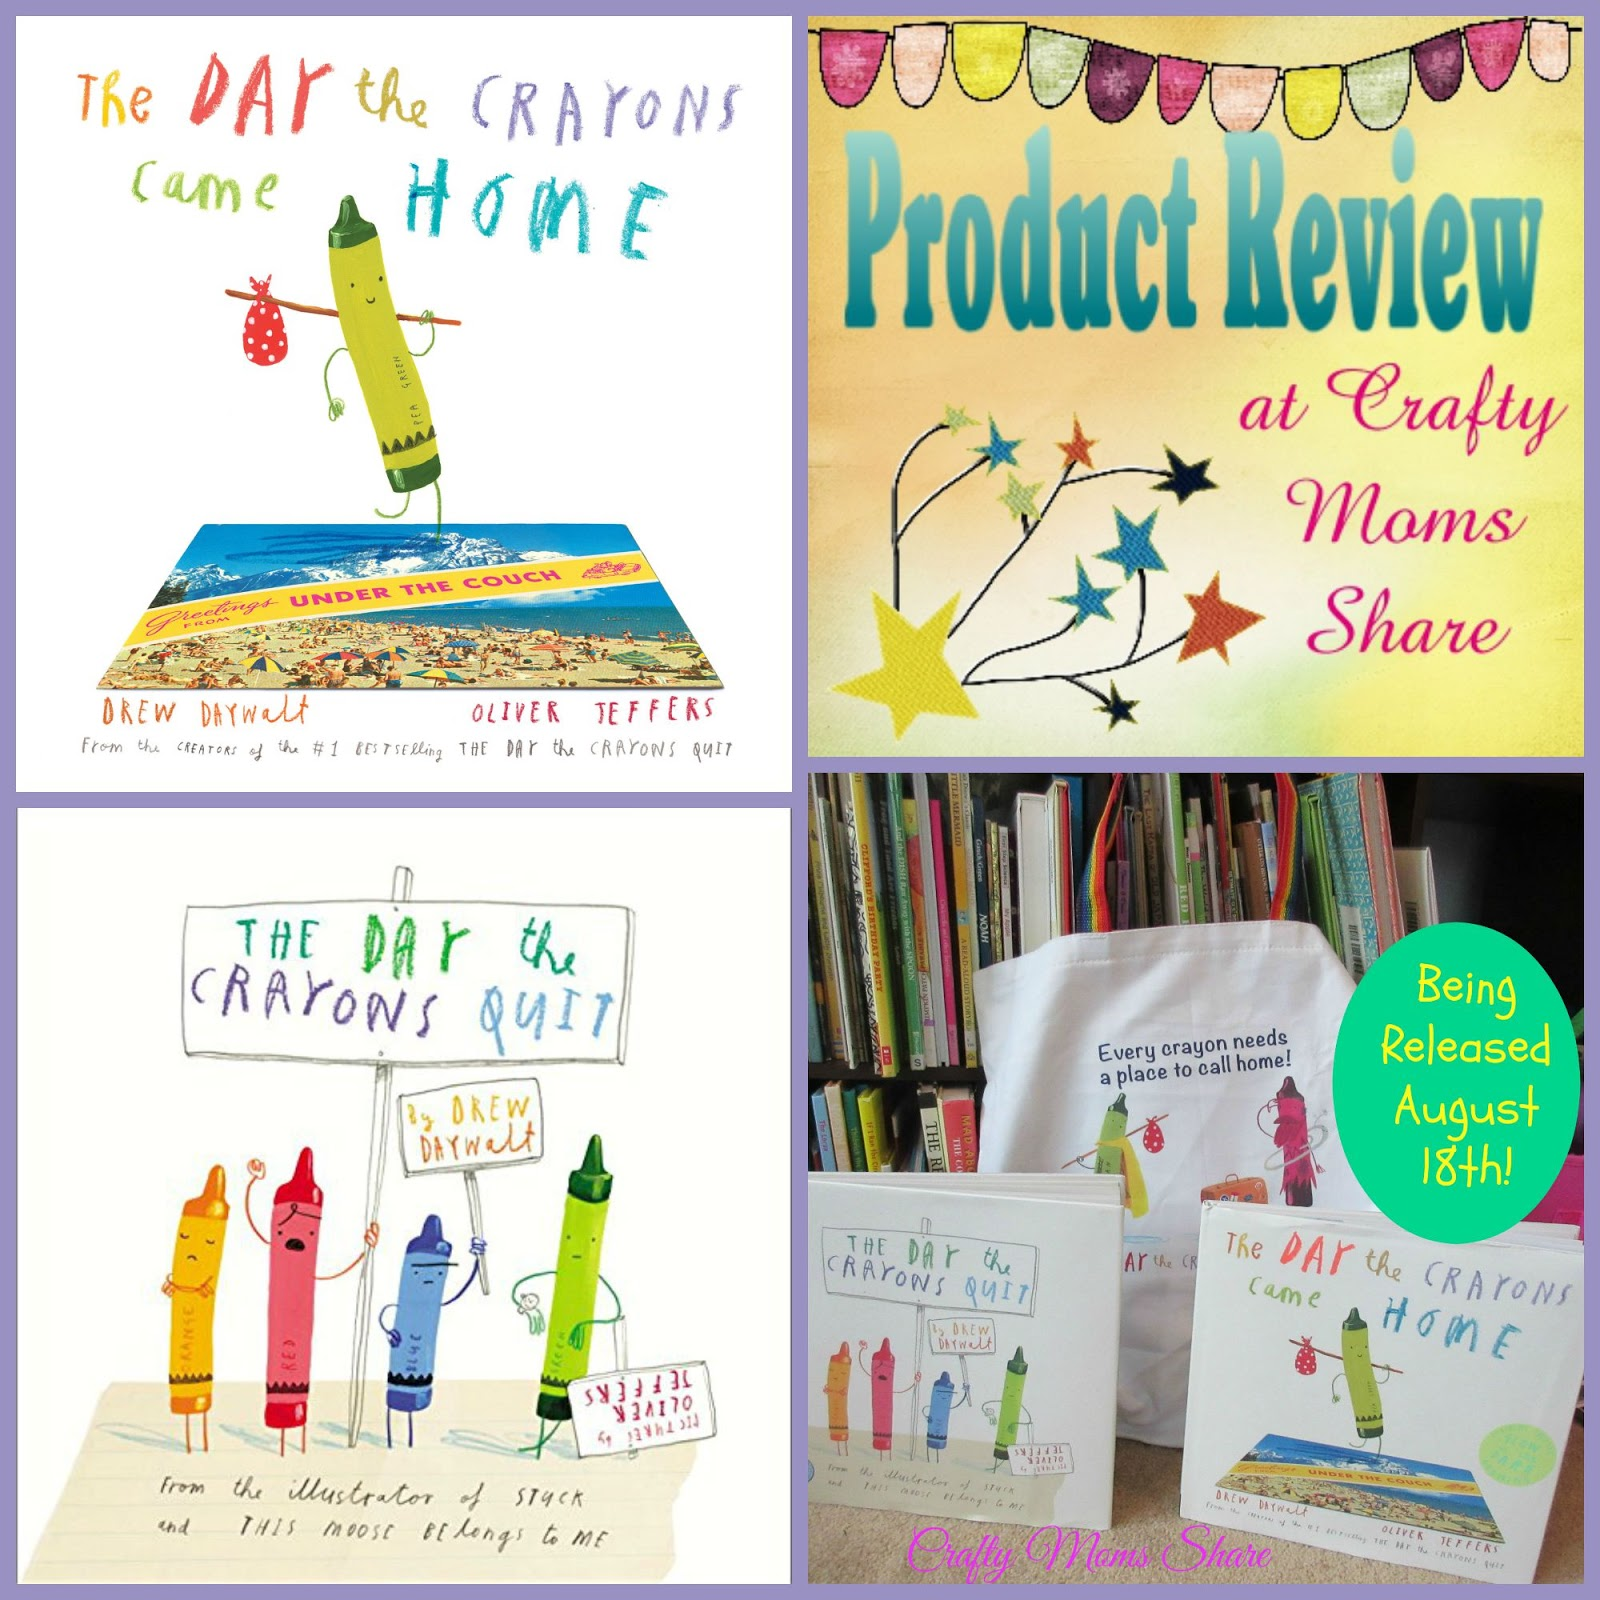 crafty moms share the day the crayons came home book review